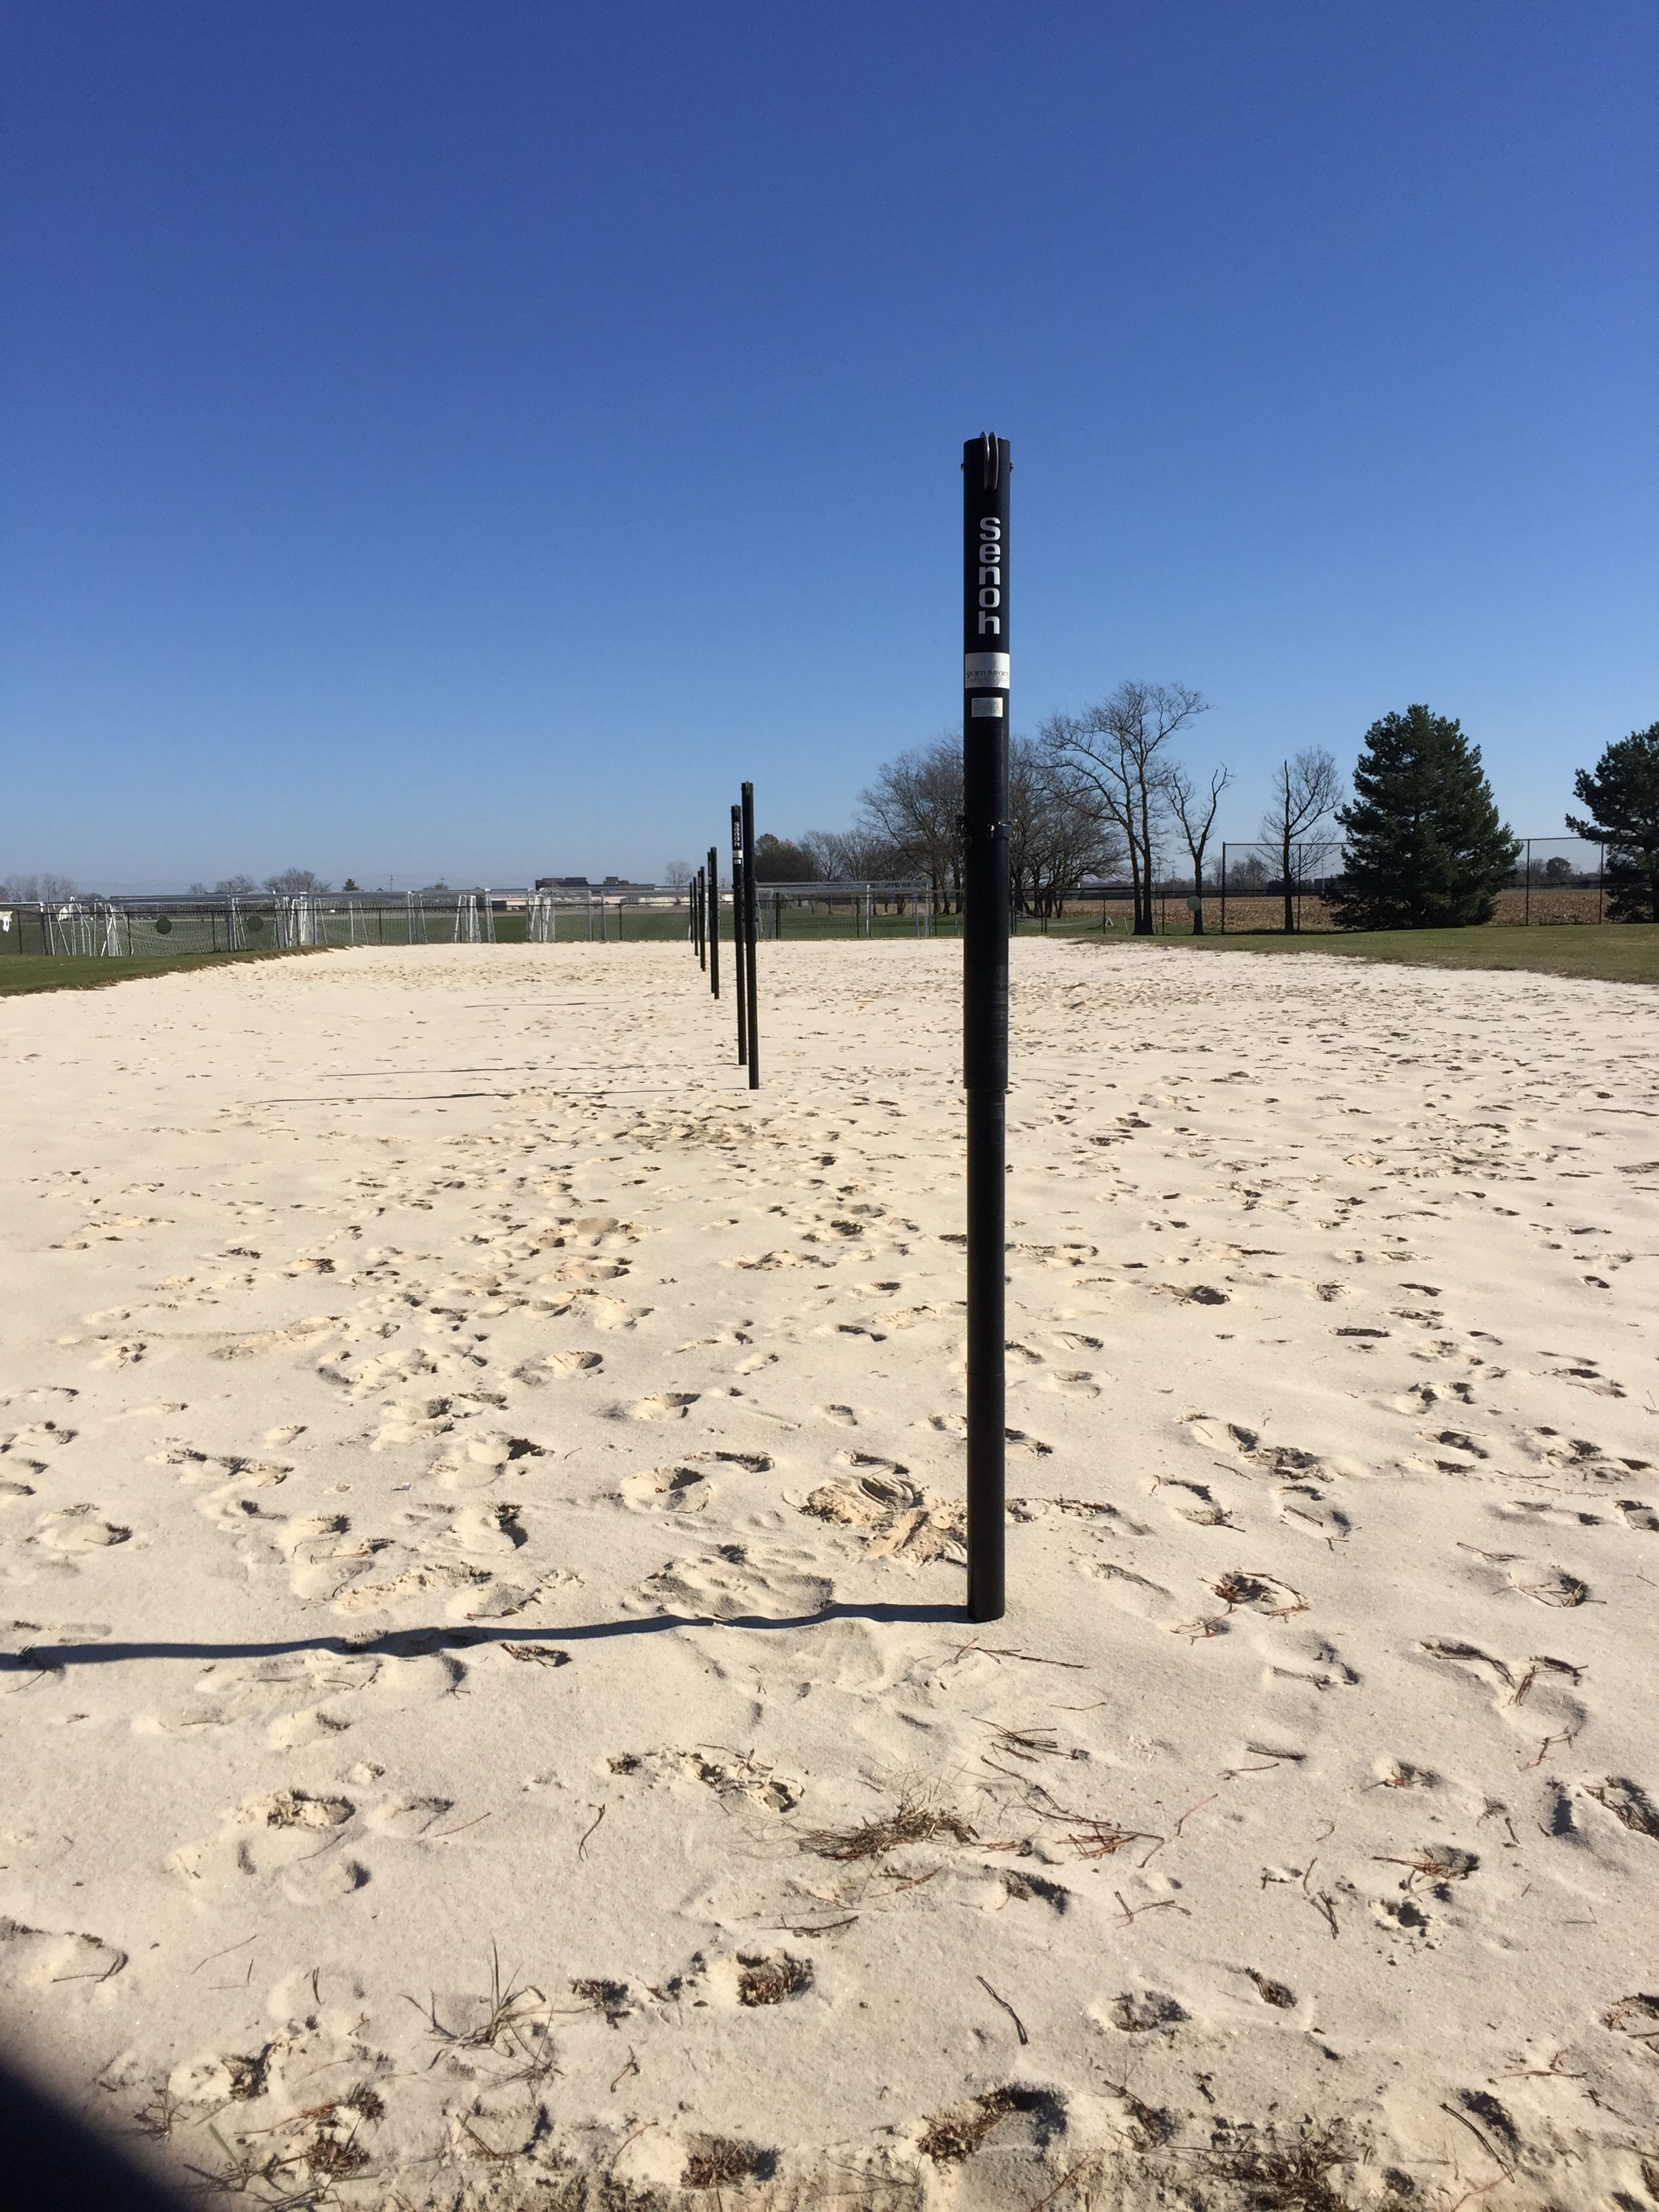 Dublin ohio sports complex with sports imports beach